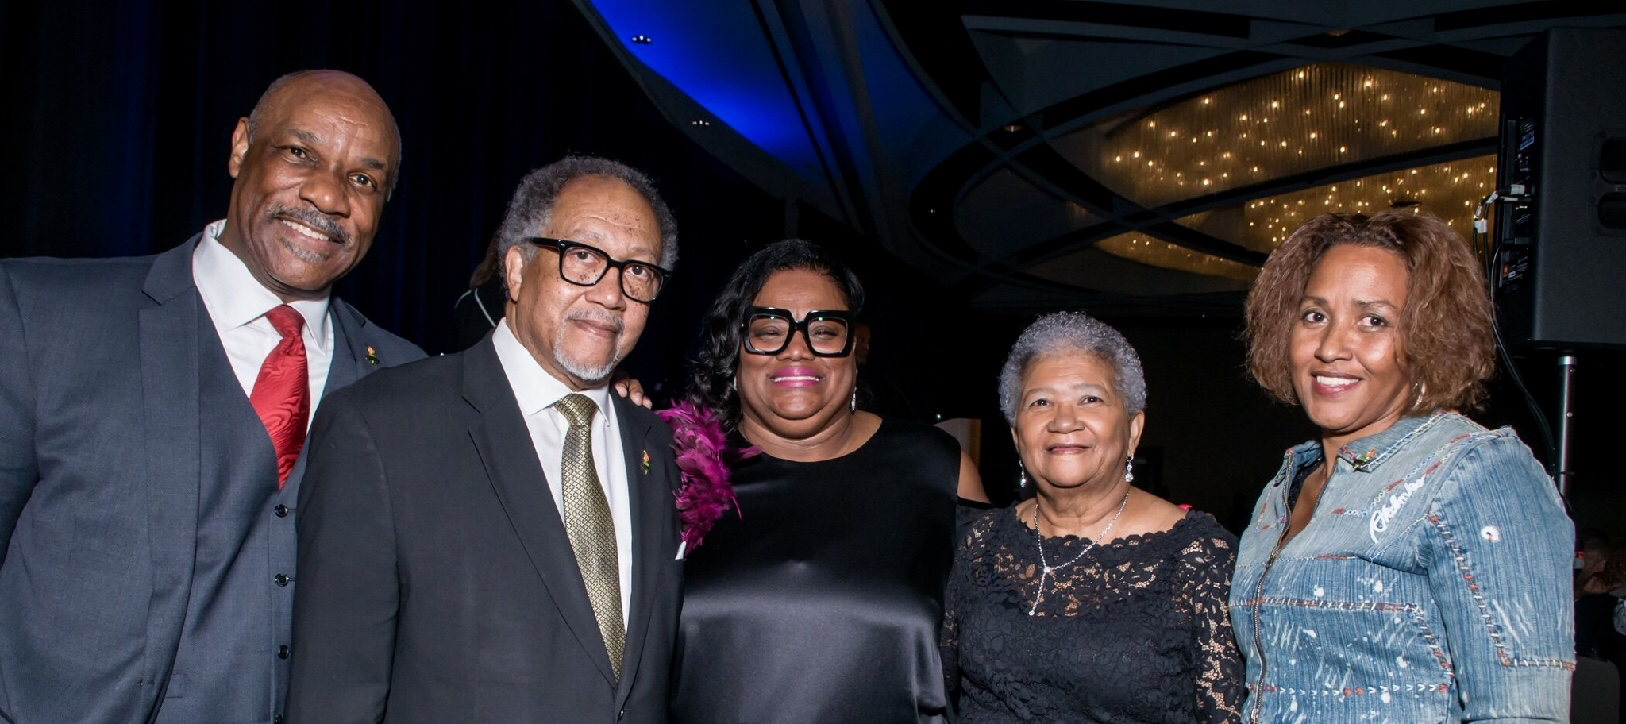 Sun Reporter Publisher Amelia Ashley Ward (center) is joined by (left to right) North Dallas Gazette Publisher Thurman Jones, NNPA President and CEO Dr. Benjamin F. Chavis, Jr., NNPA Chairman of the Board and Crusader Newspapers Publisher Dorothy R. Leavell and the New York Daily Challenge's Kari Watkins.